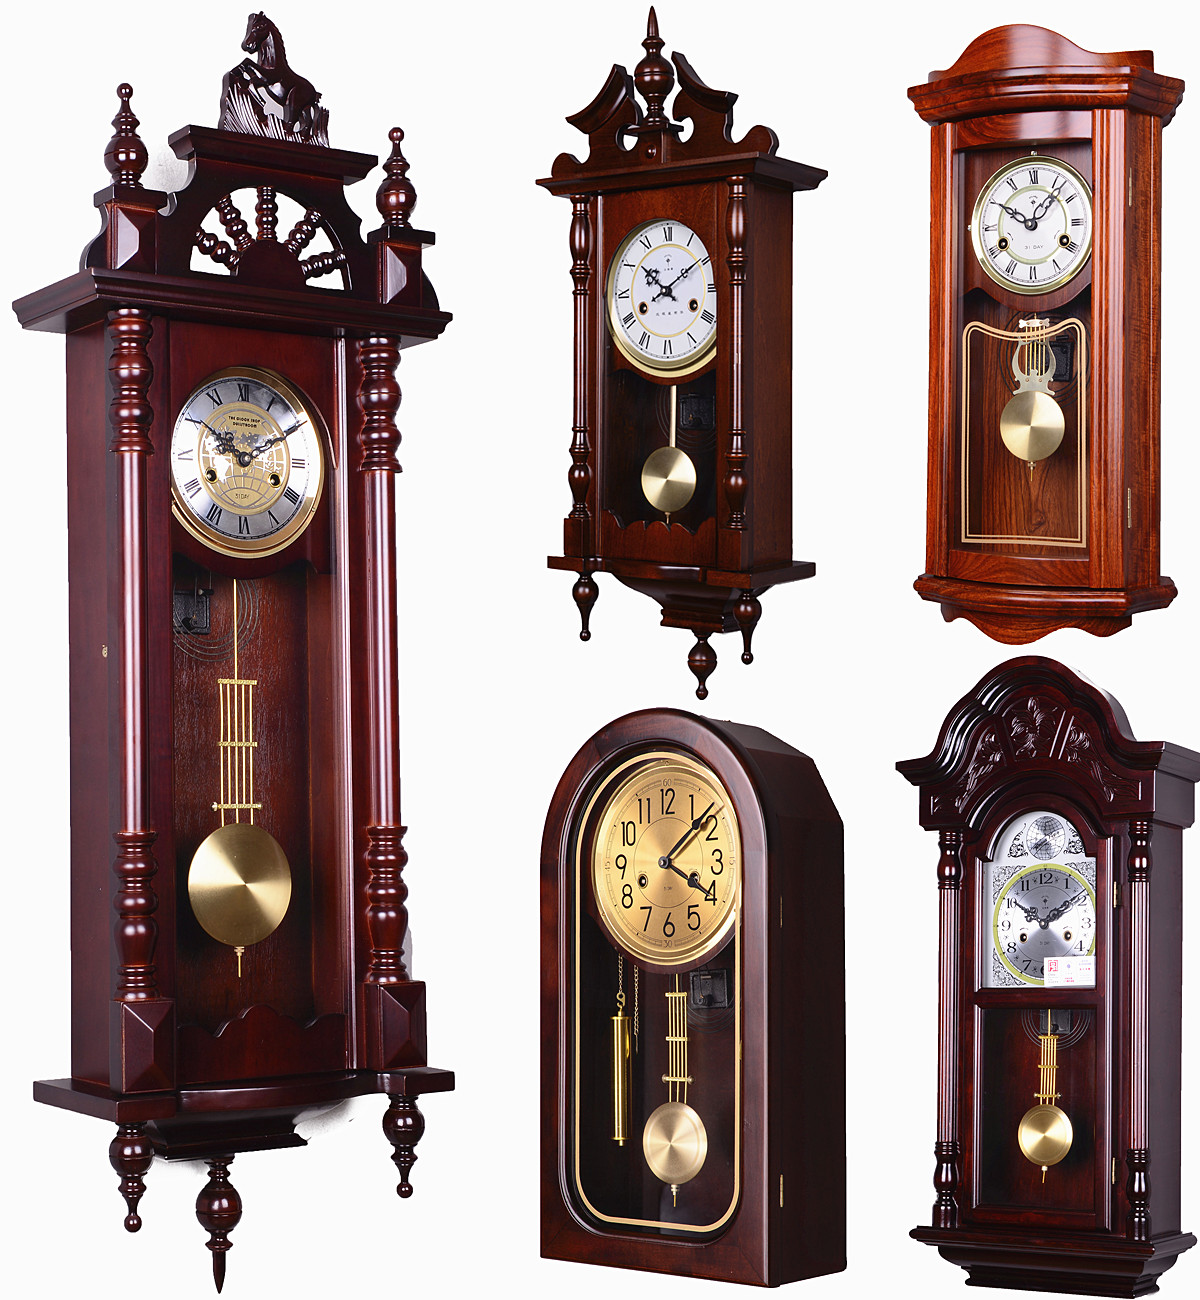 Vintage Wood Wall Clock Living Room Feng Shui Town House Mechanical Timekeeping Pendulum Clocks Stop For North Copper Movement In Desk Table From